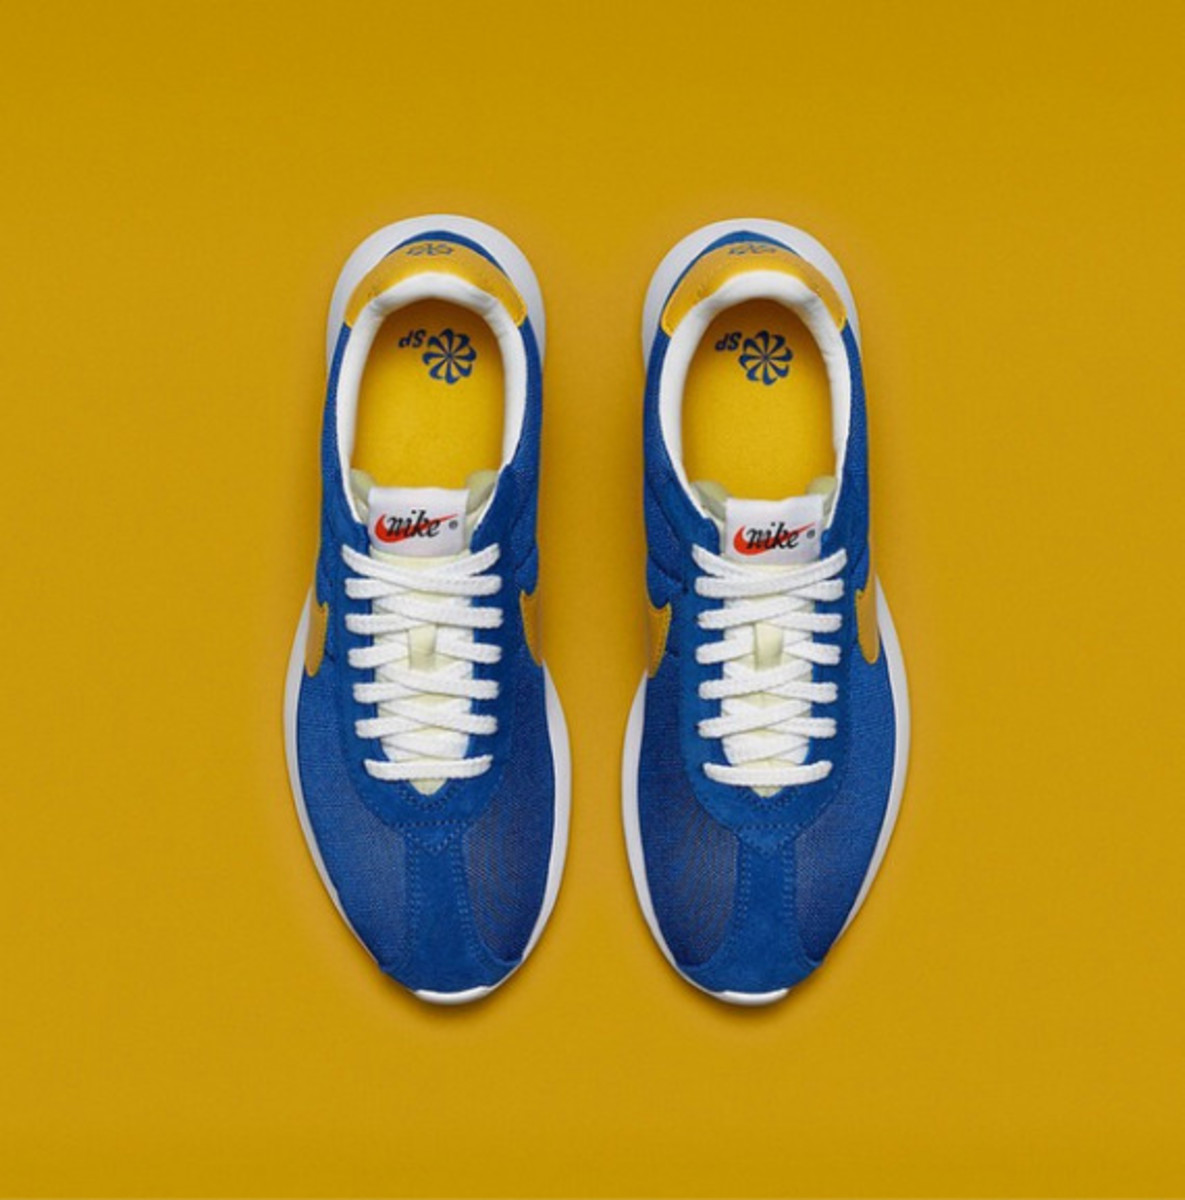 nikelab-unveils-blue-colorway-of-the-fragment-design-nike-rose-ld-1000-sp-02